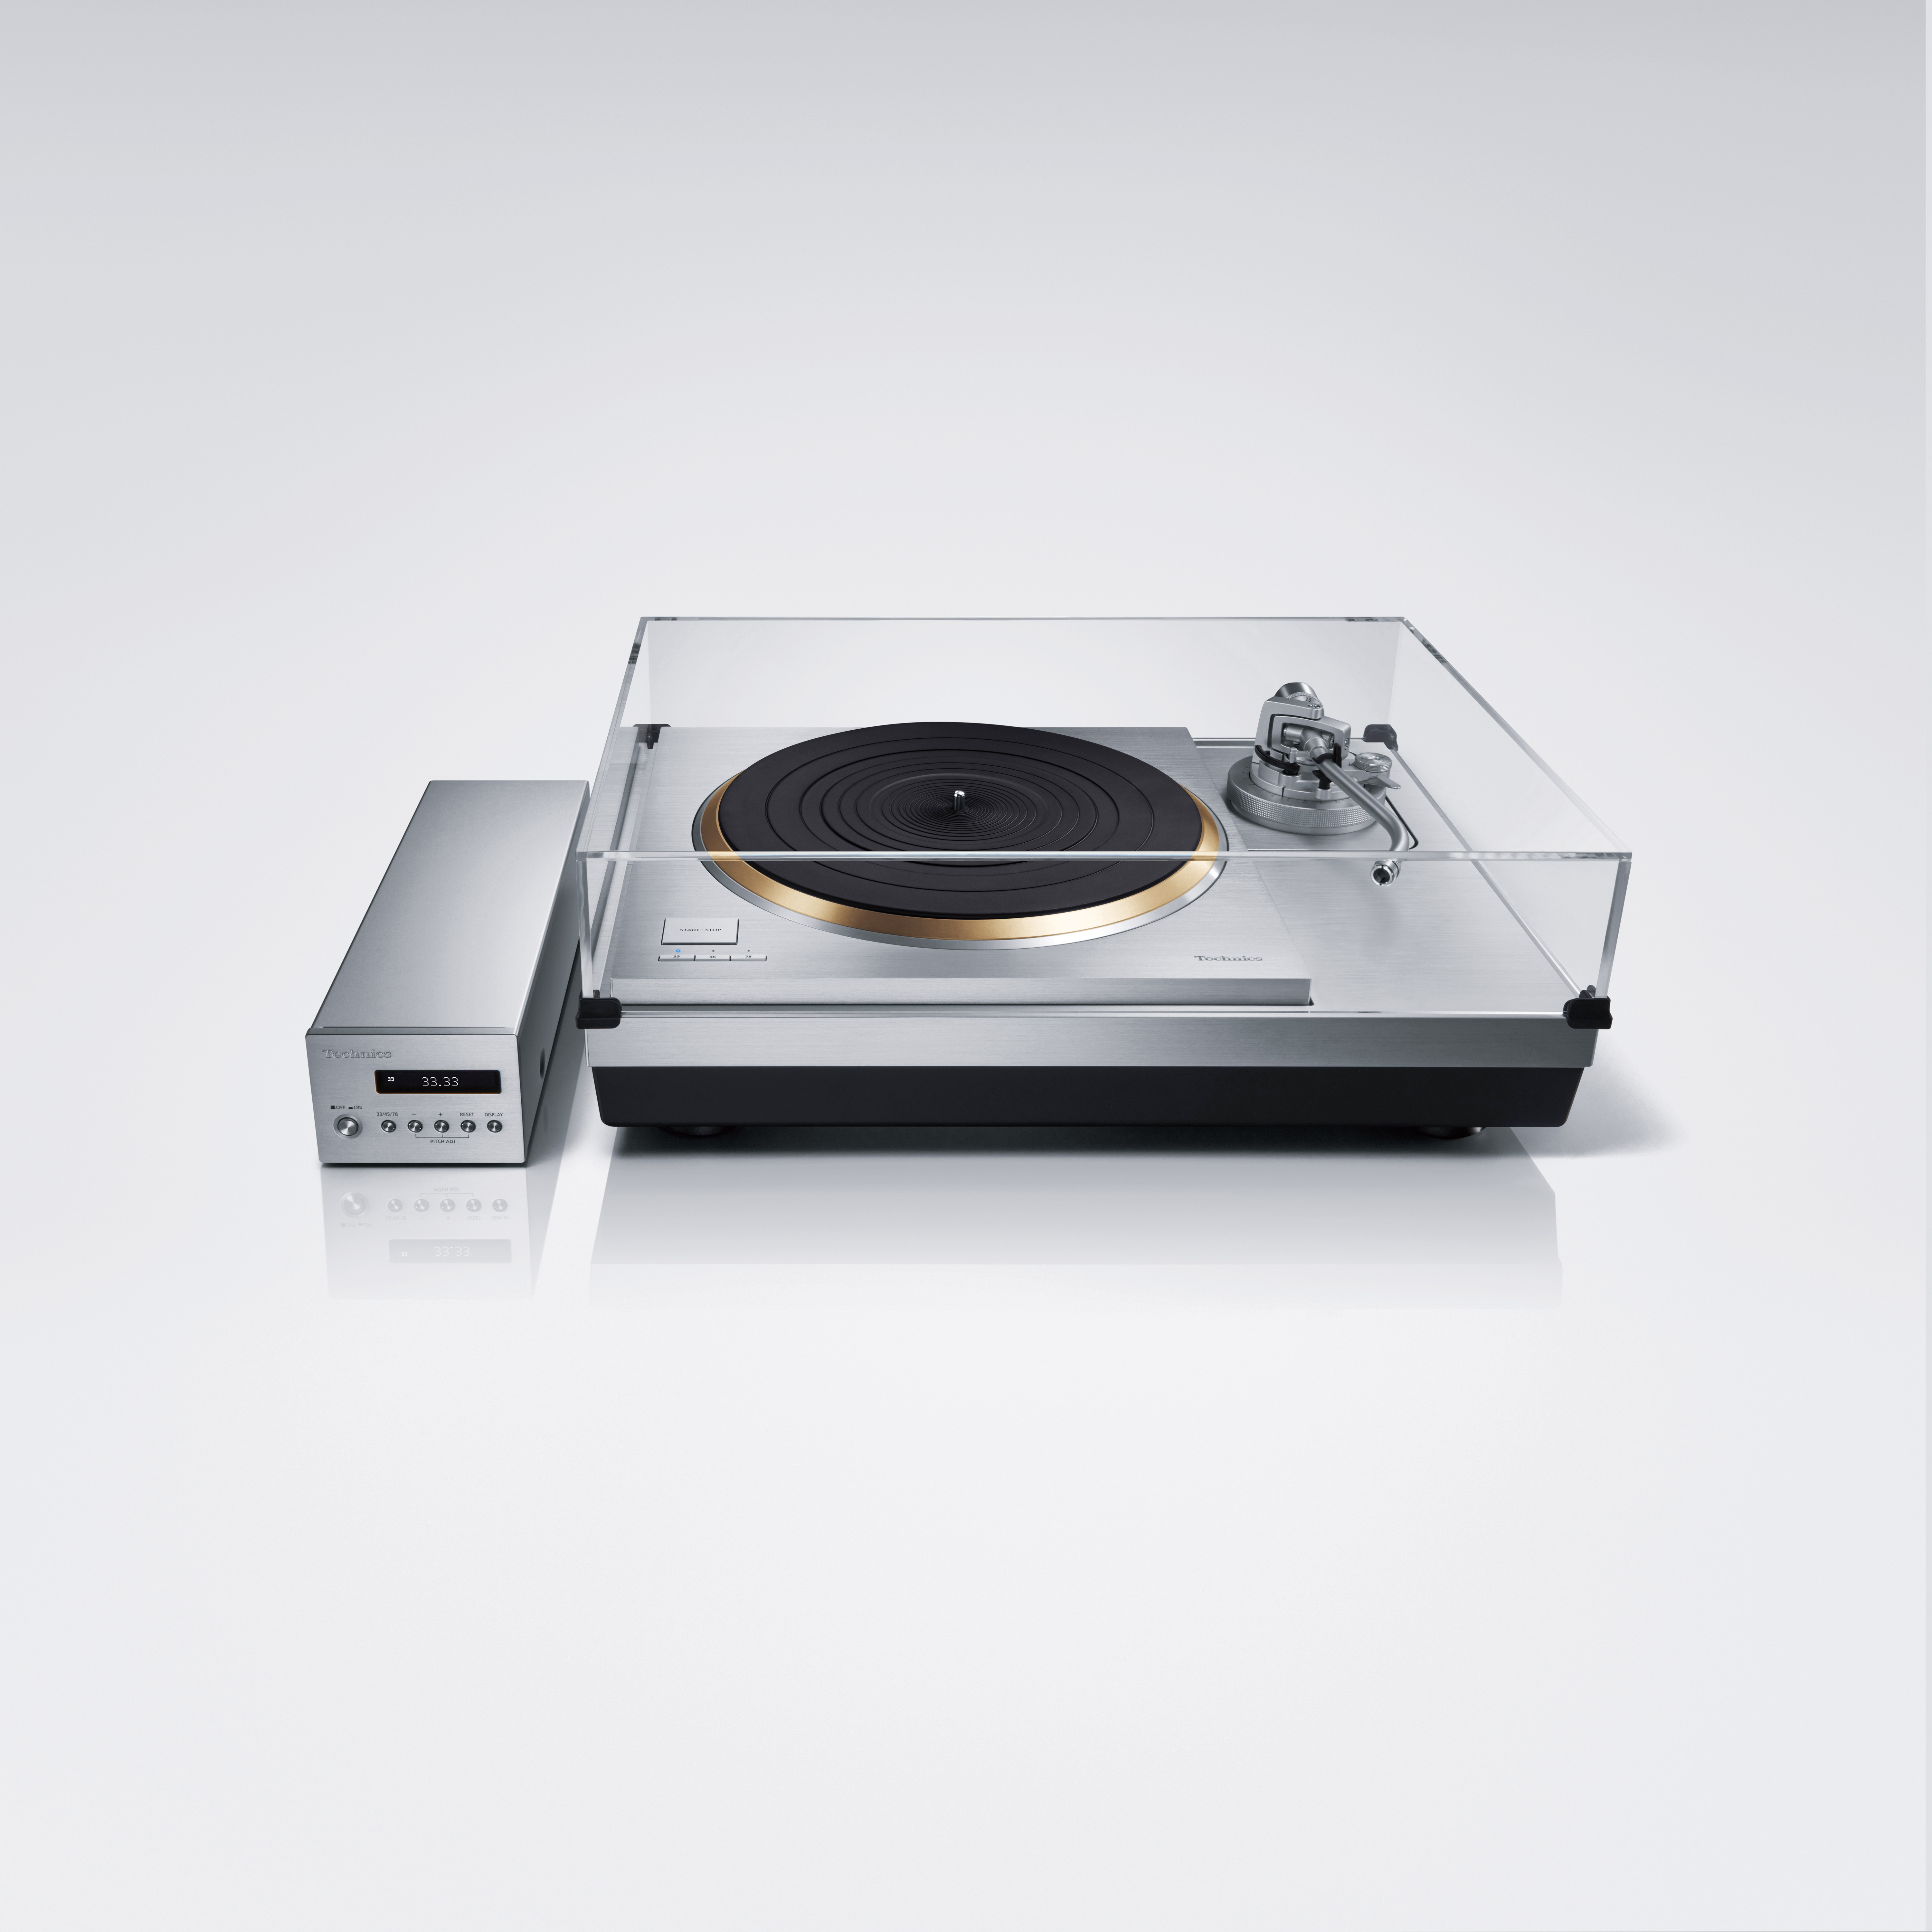 Direct_Drive_Turntable_System_SL-1000R_08_JPN_r